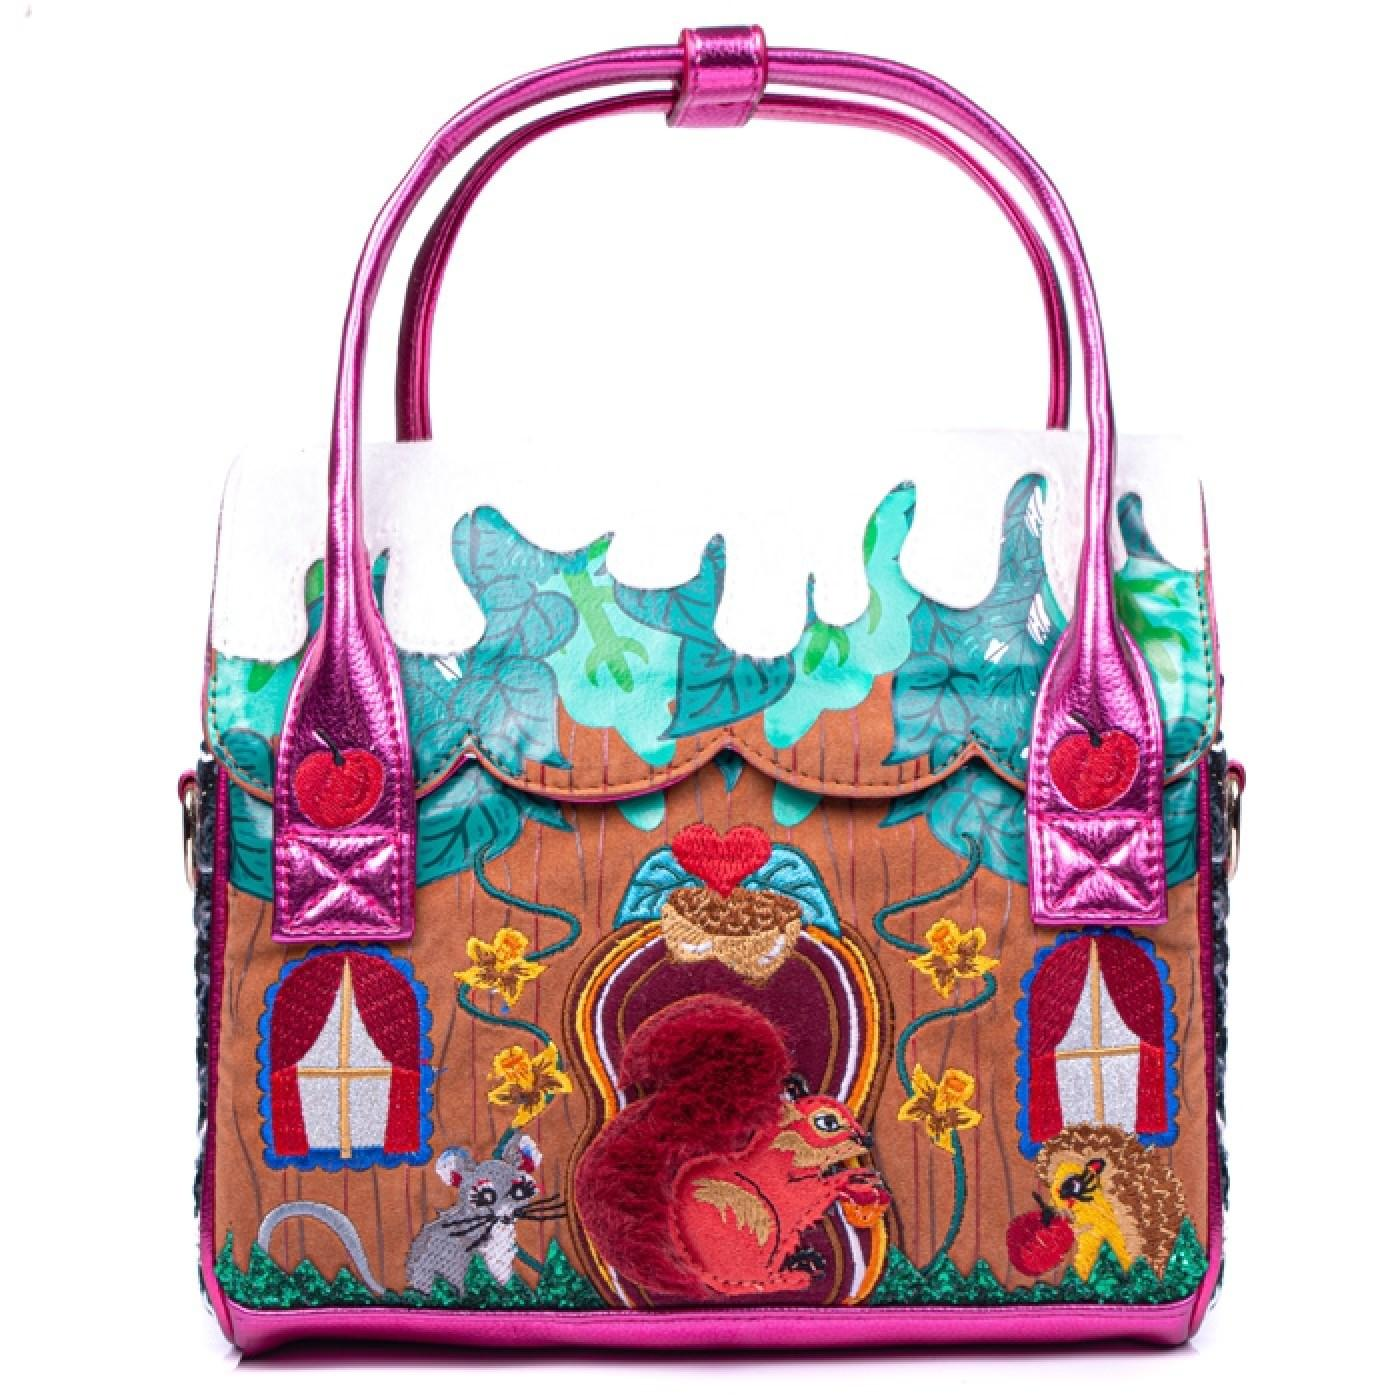 McNutty's Cabin IRREGULAR CHOICE Squirrel Handbag